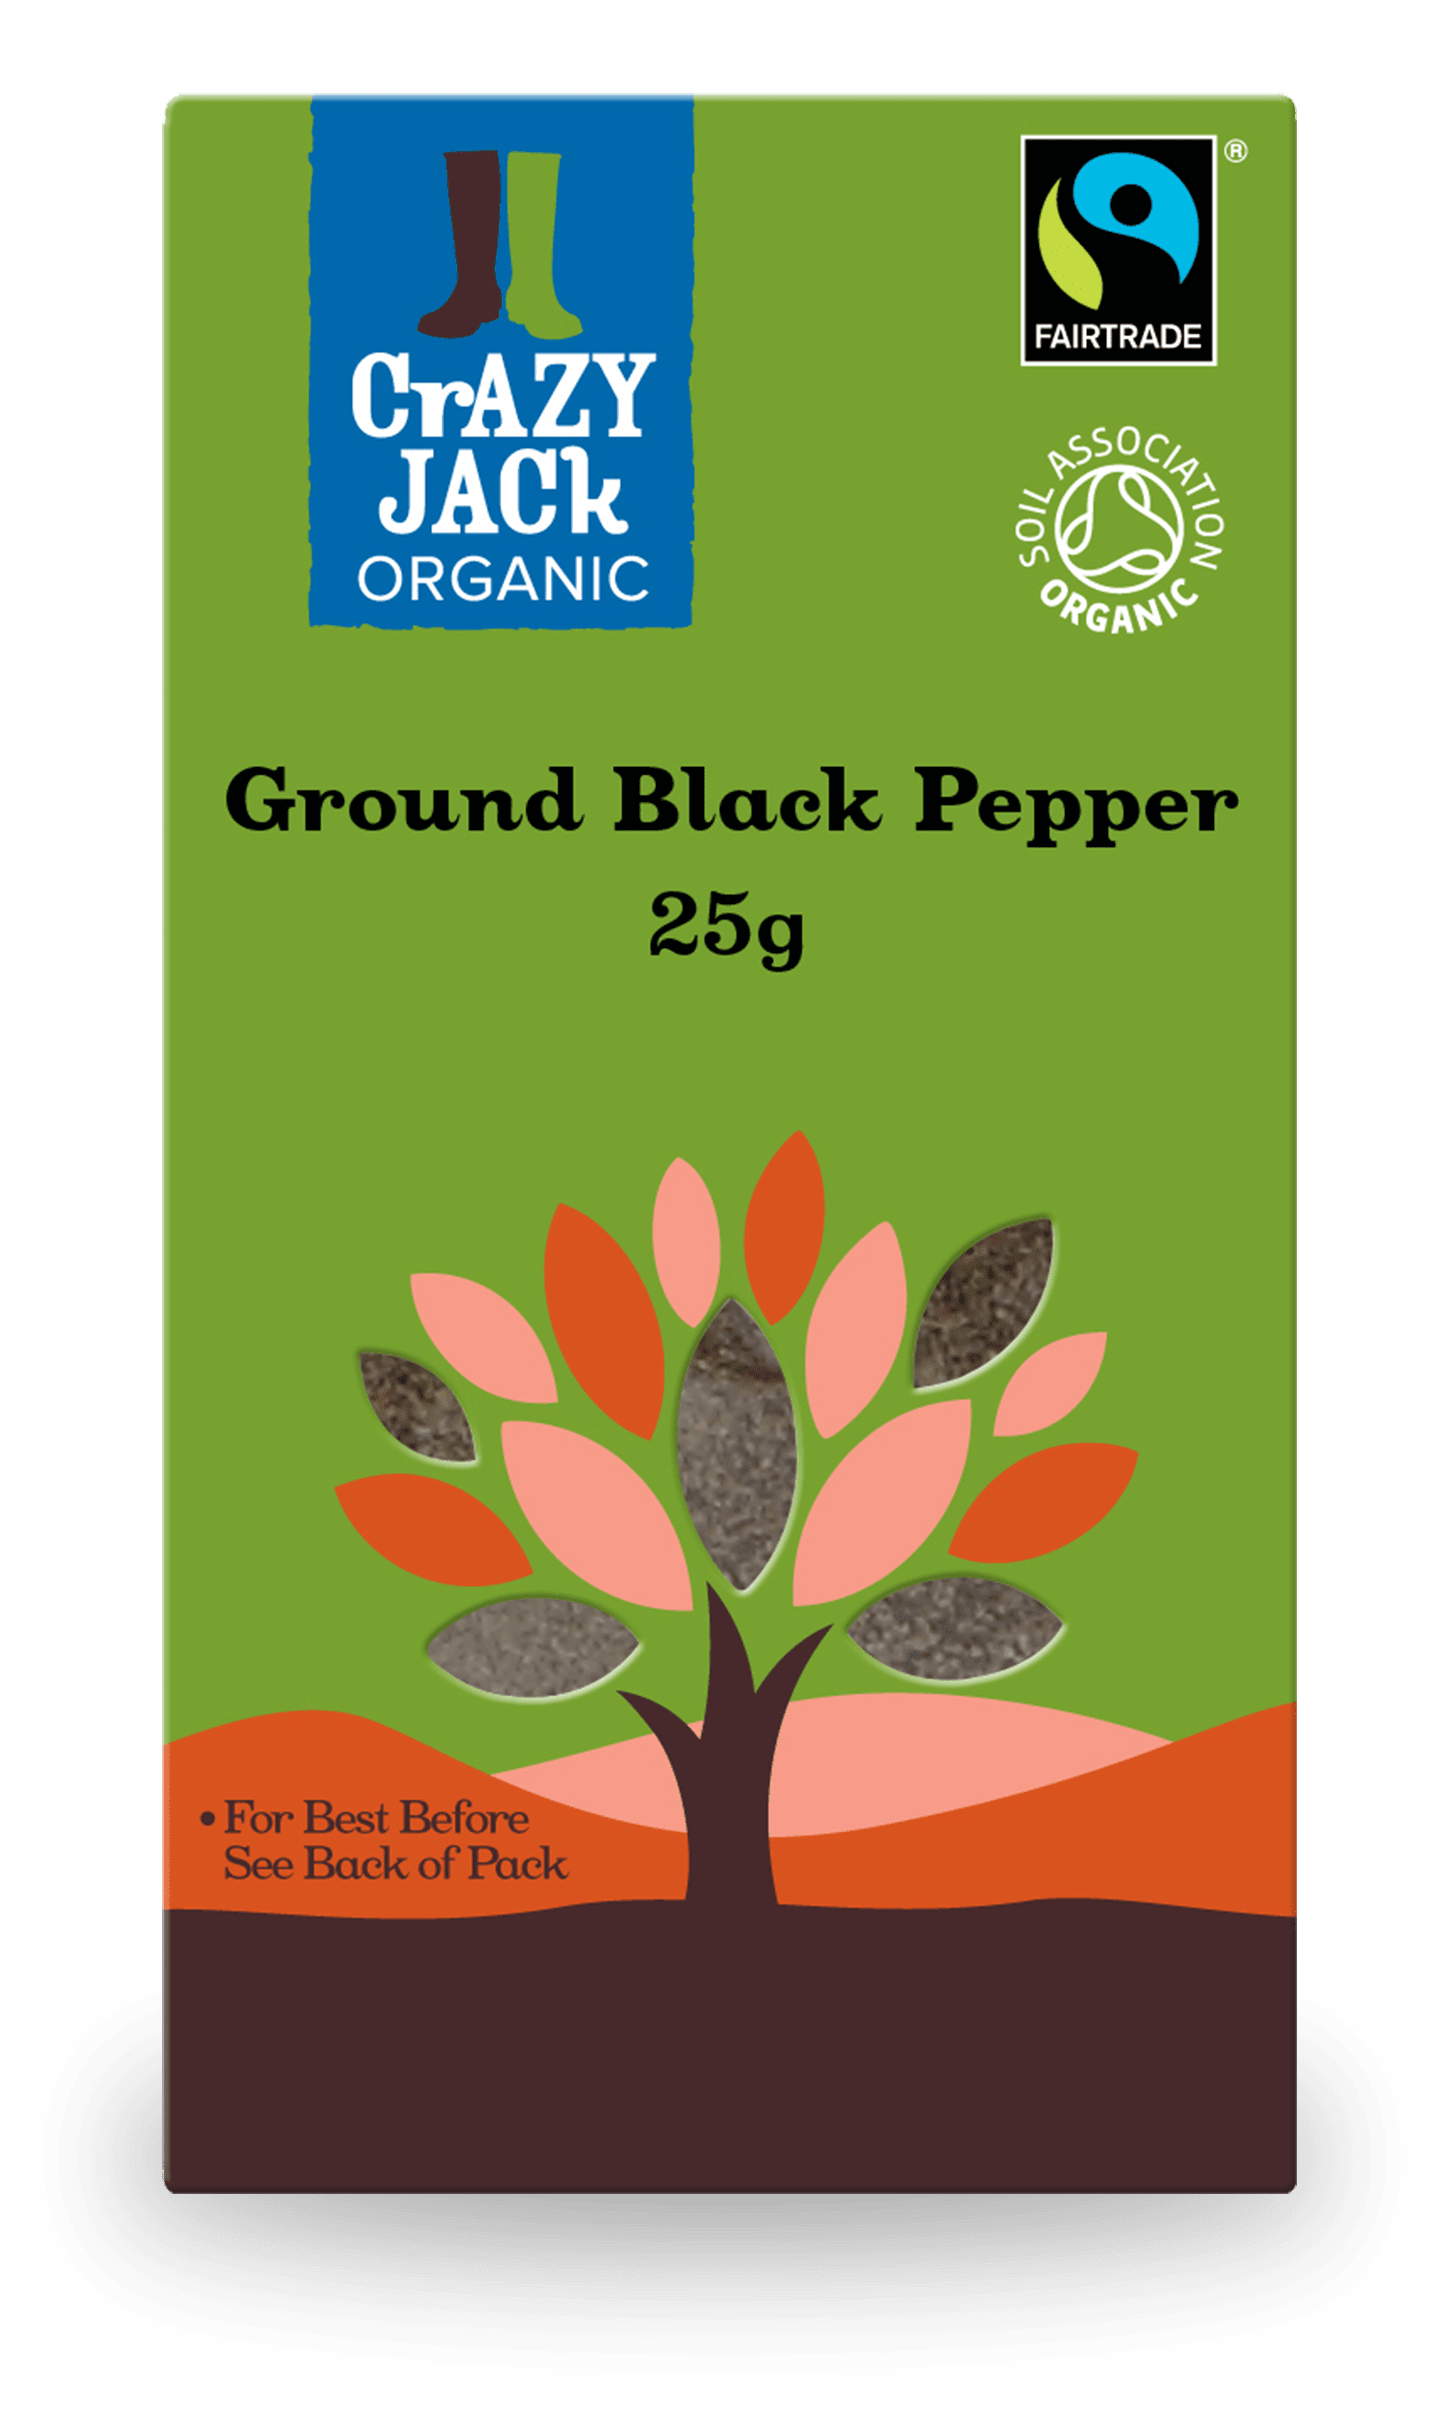 25g packet of organic ground black pepper